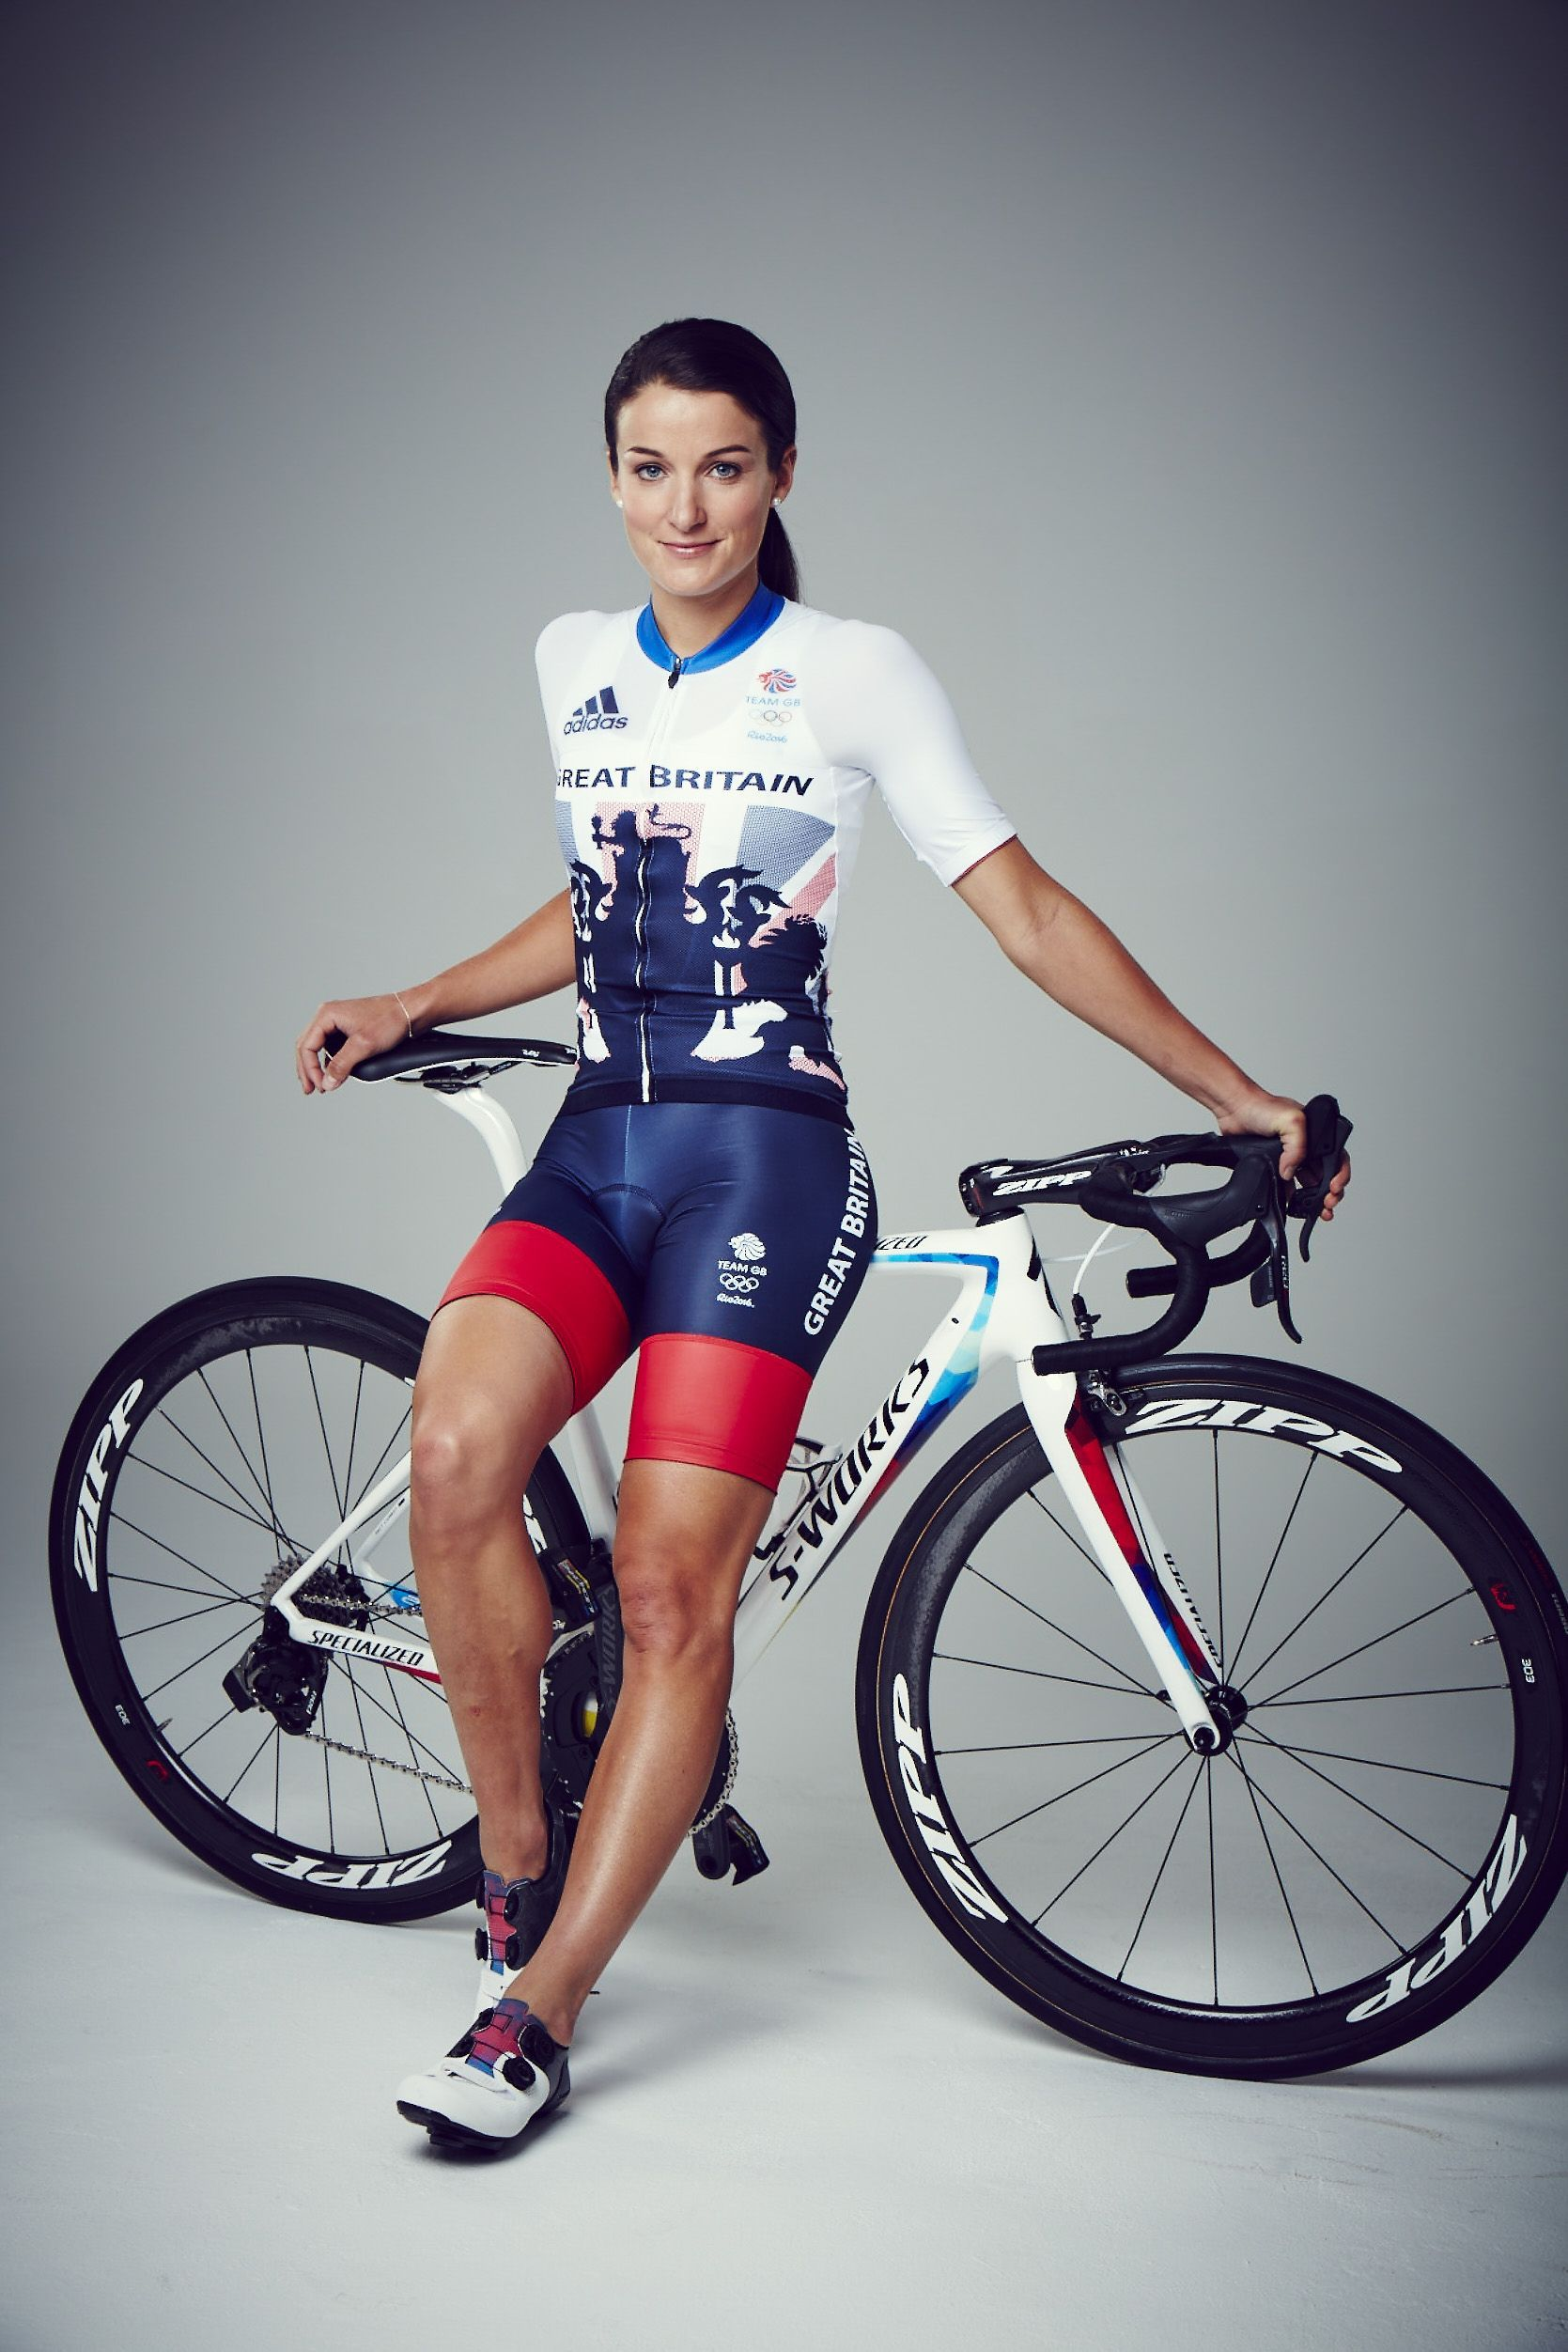 Lizzie Deignan (Boels-Dolmans) | Bicycle women, Cycling ...